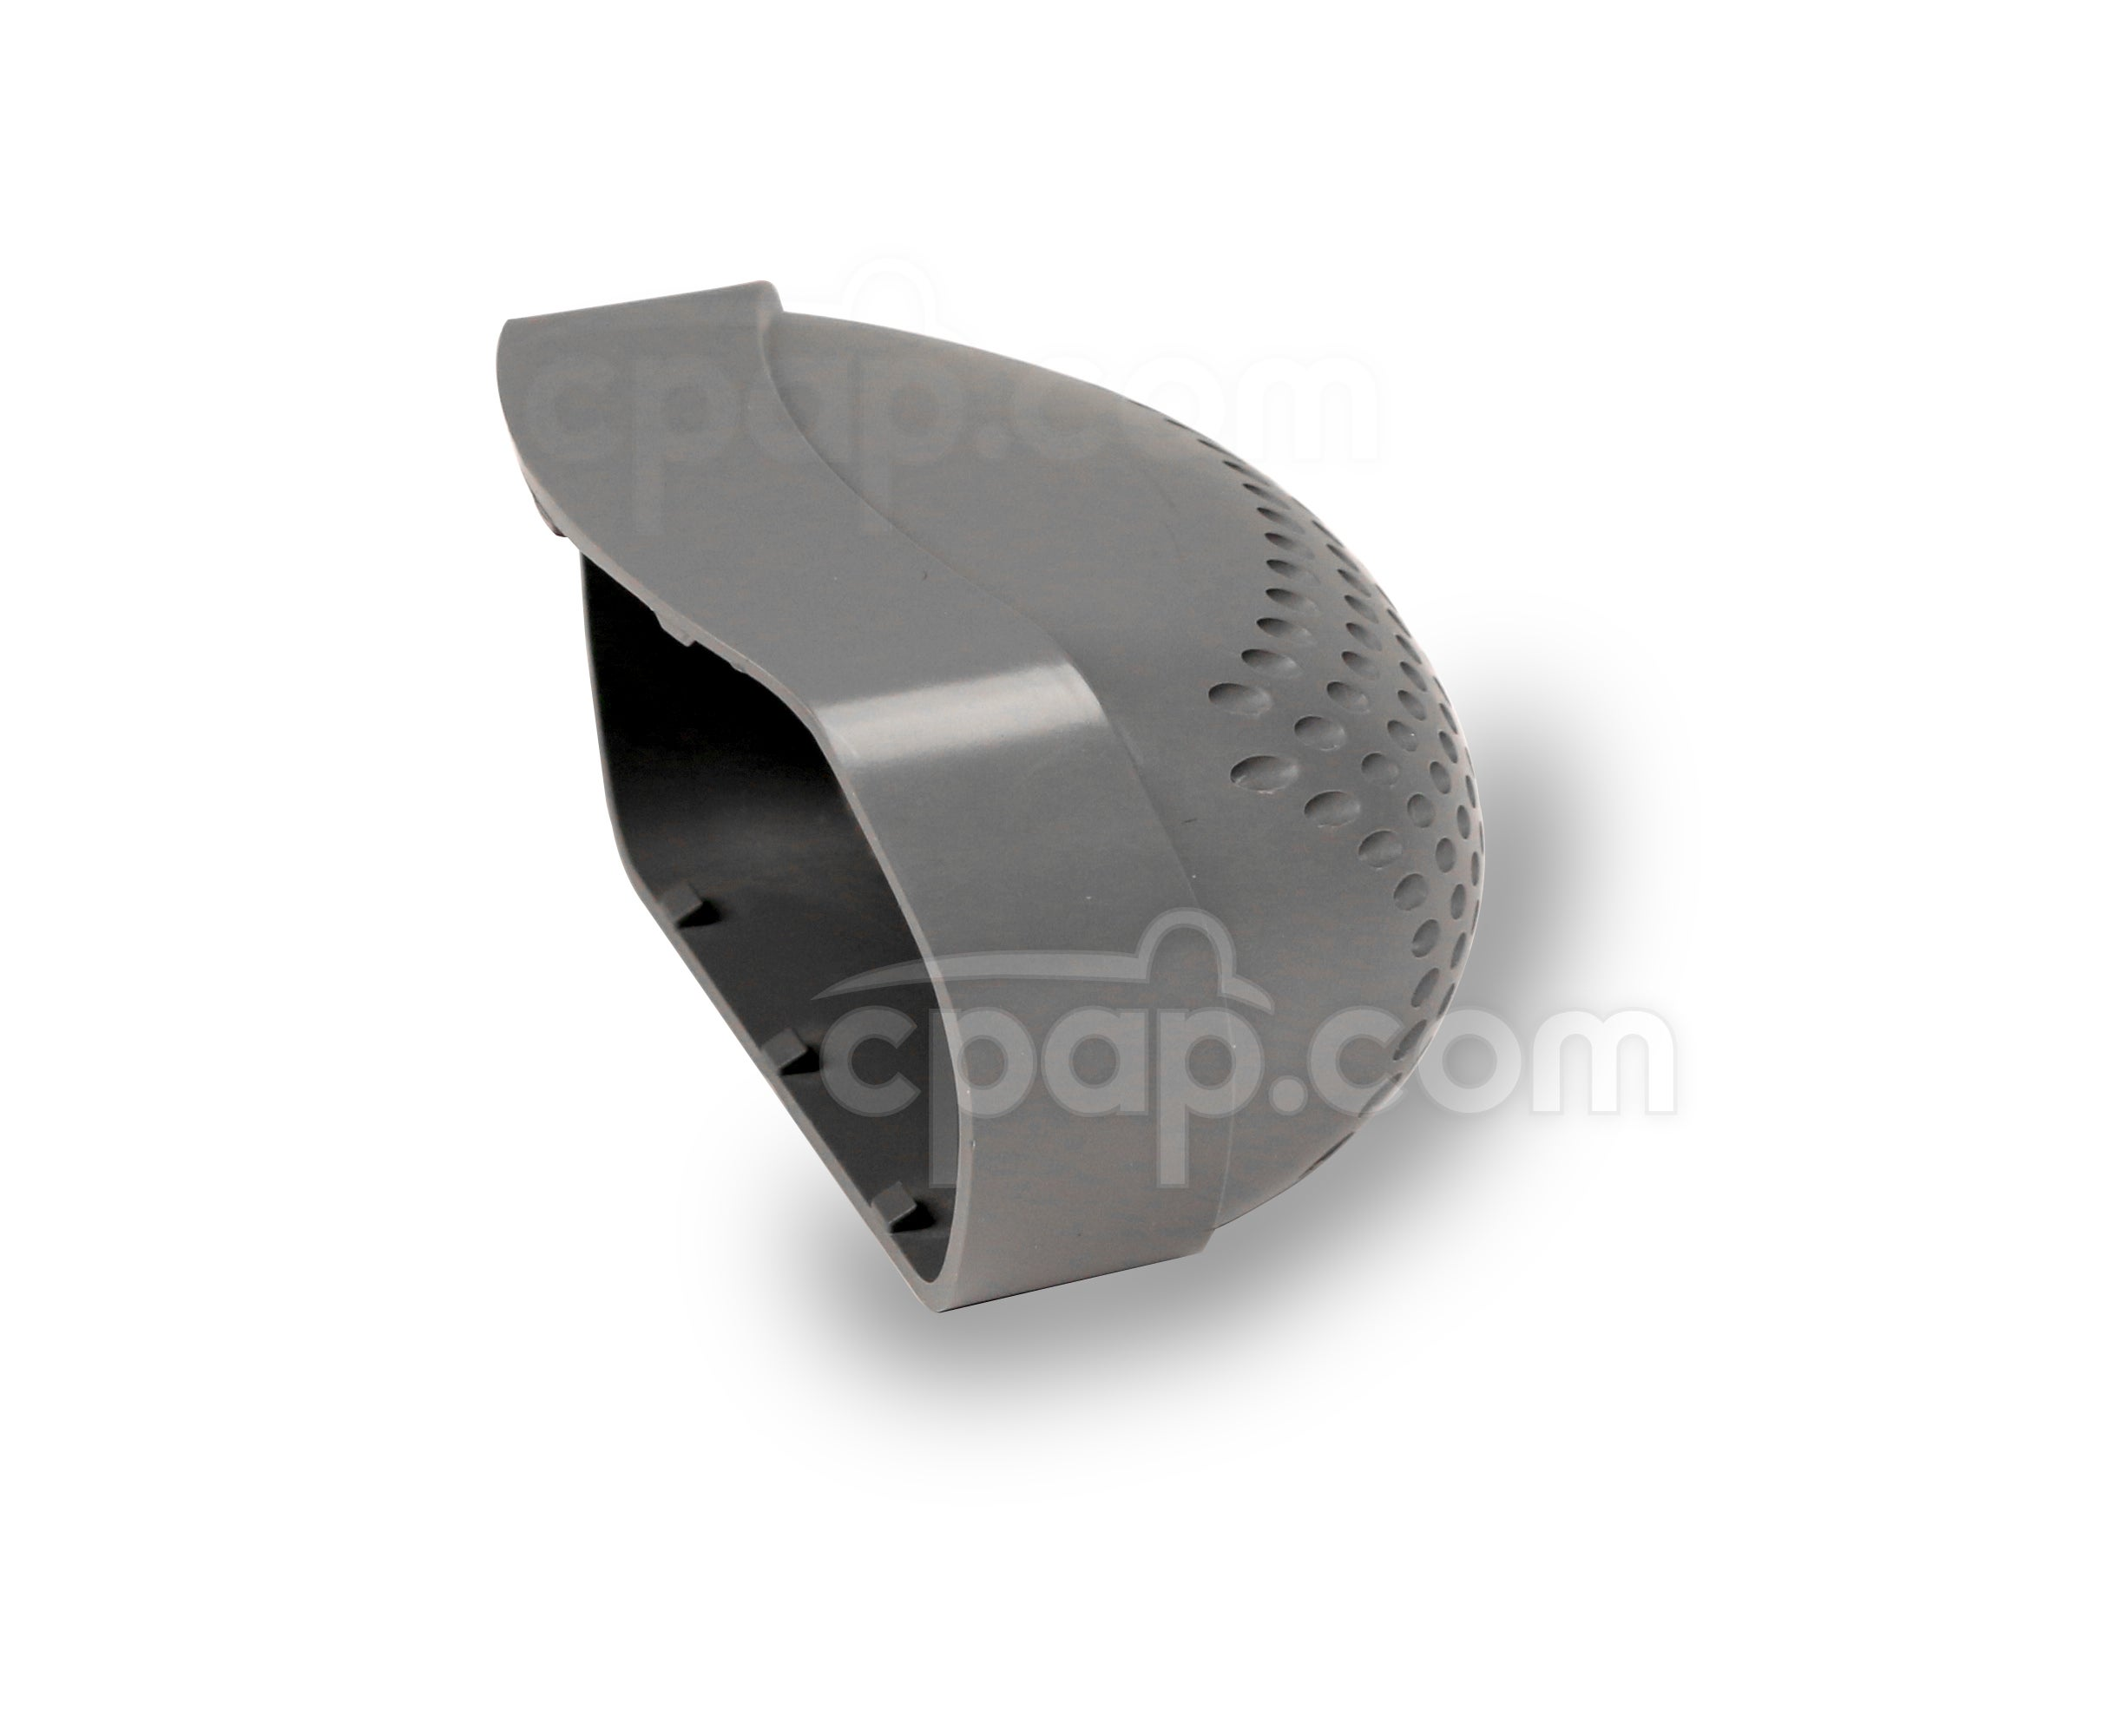 Plastic Filter End Cap for Z1 Travel CPAP Machine - Front View